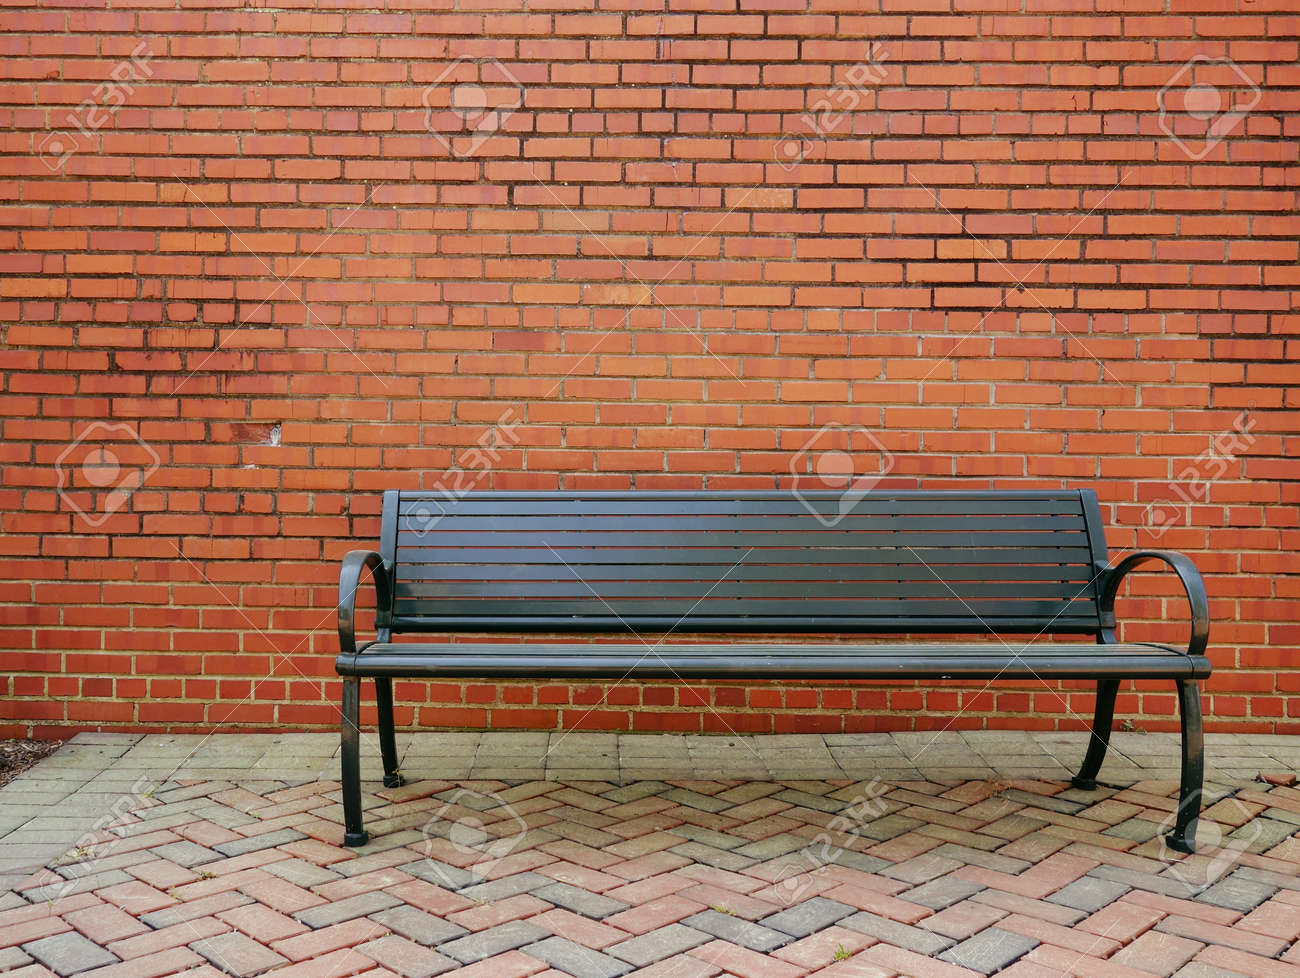 An empty metal park bench in front of a blank brick wall - 169465827